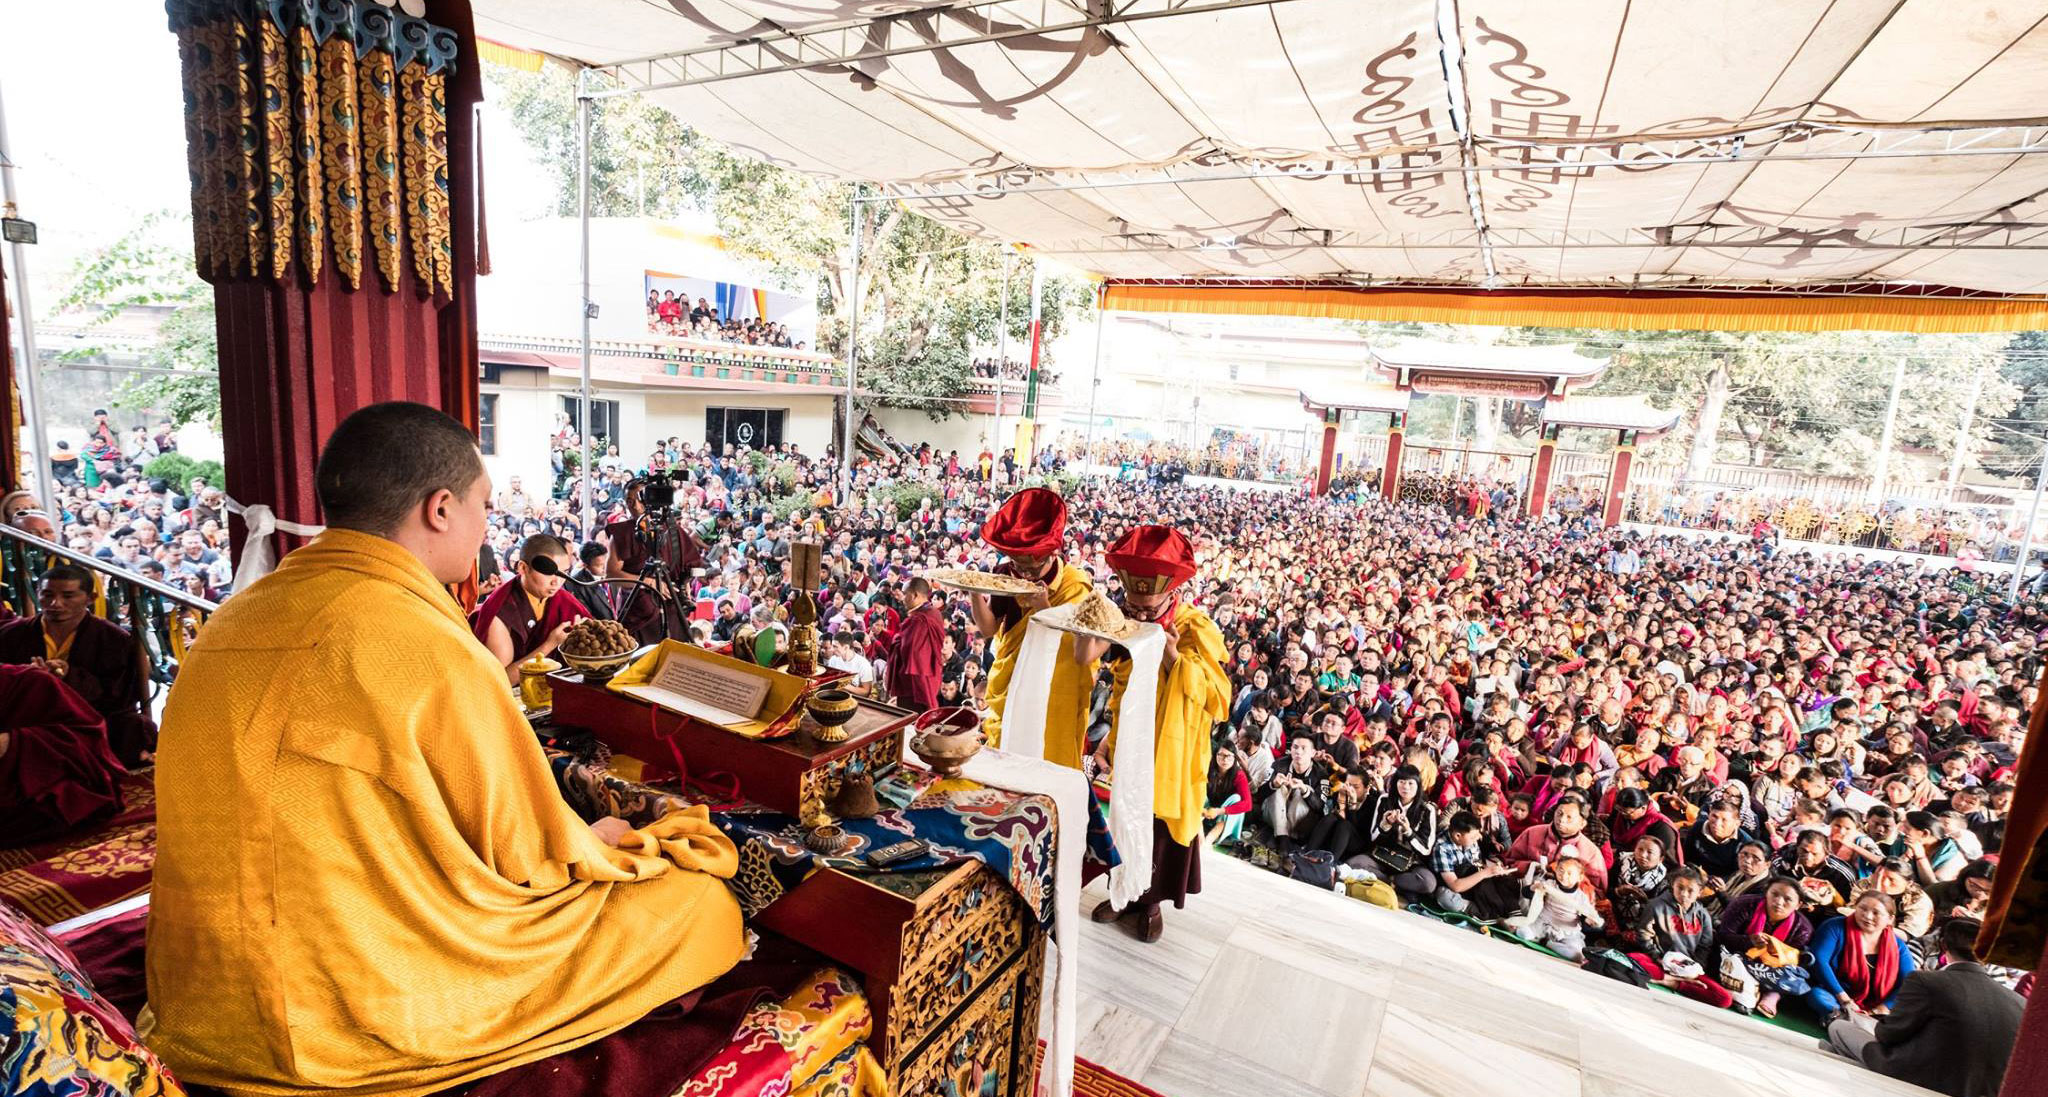 Karmapa guiding the Kagyu Monlam celebrations in Bodhgaya